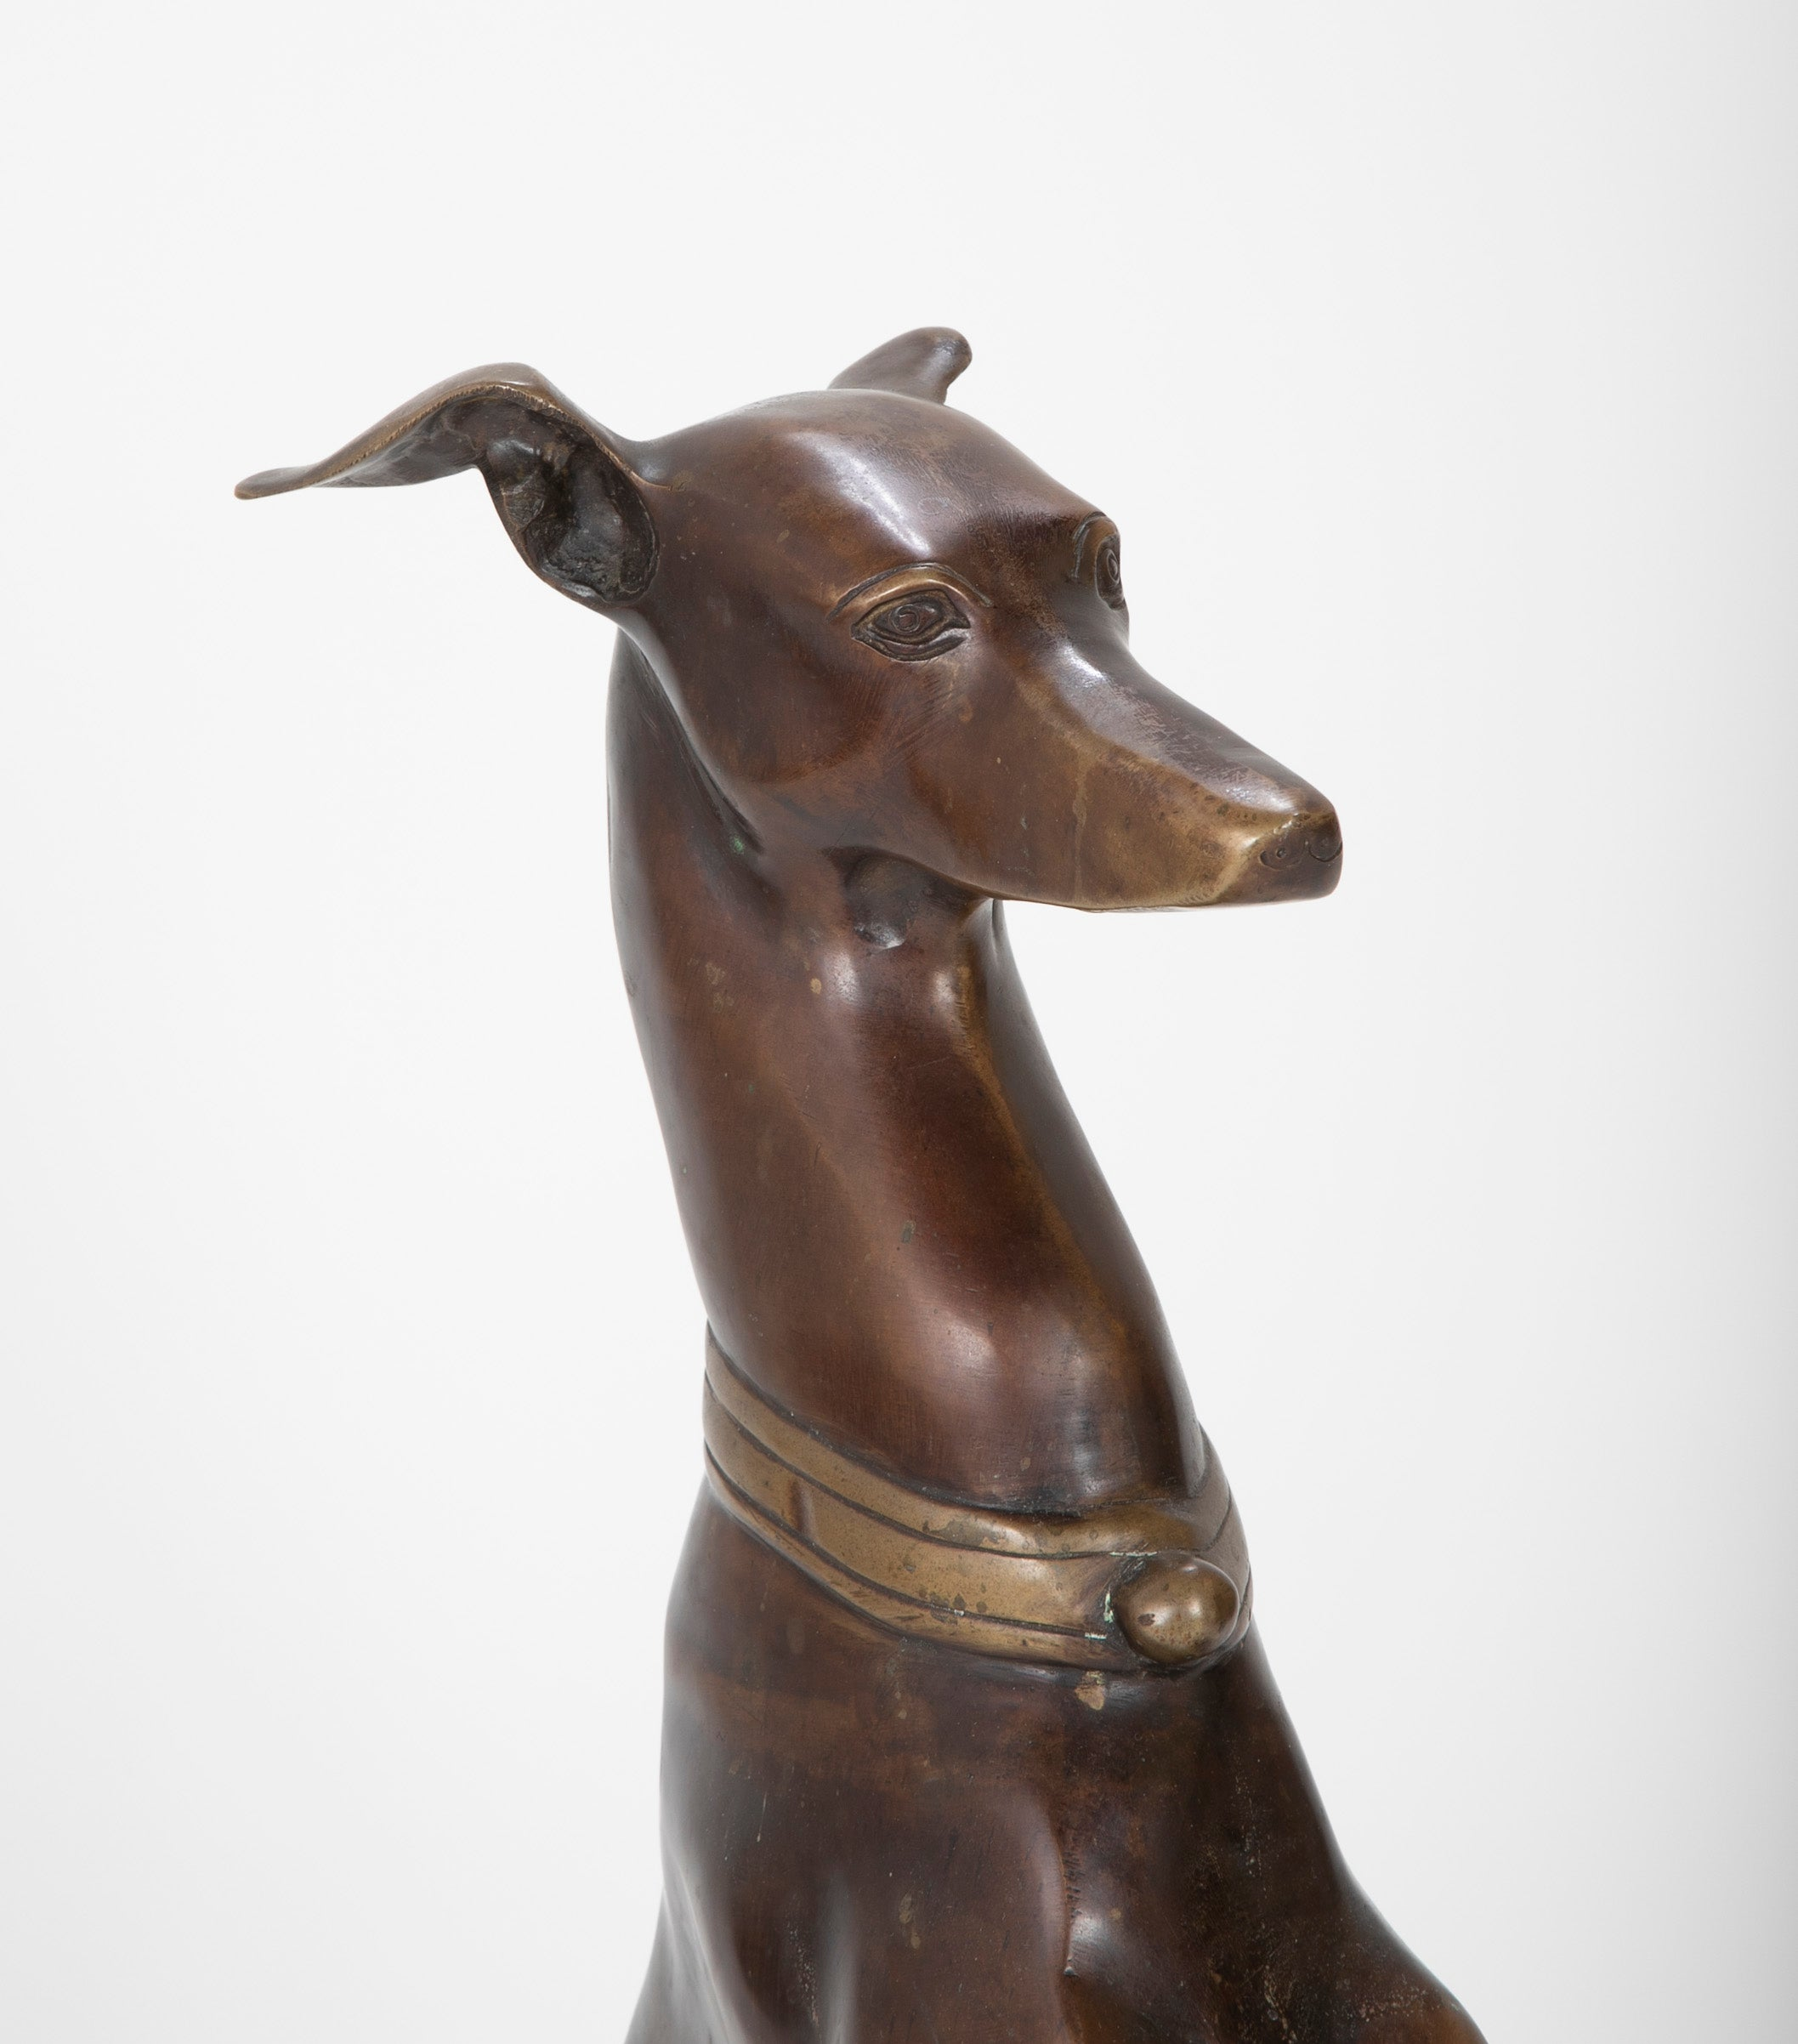 Bronze Figure of a Whippet or Greyhound